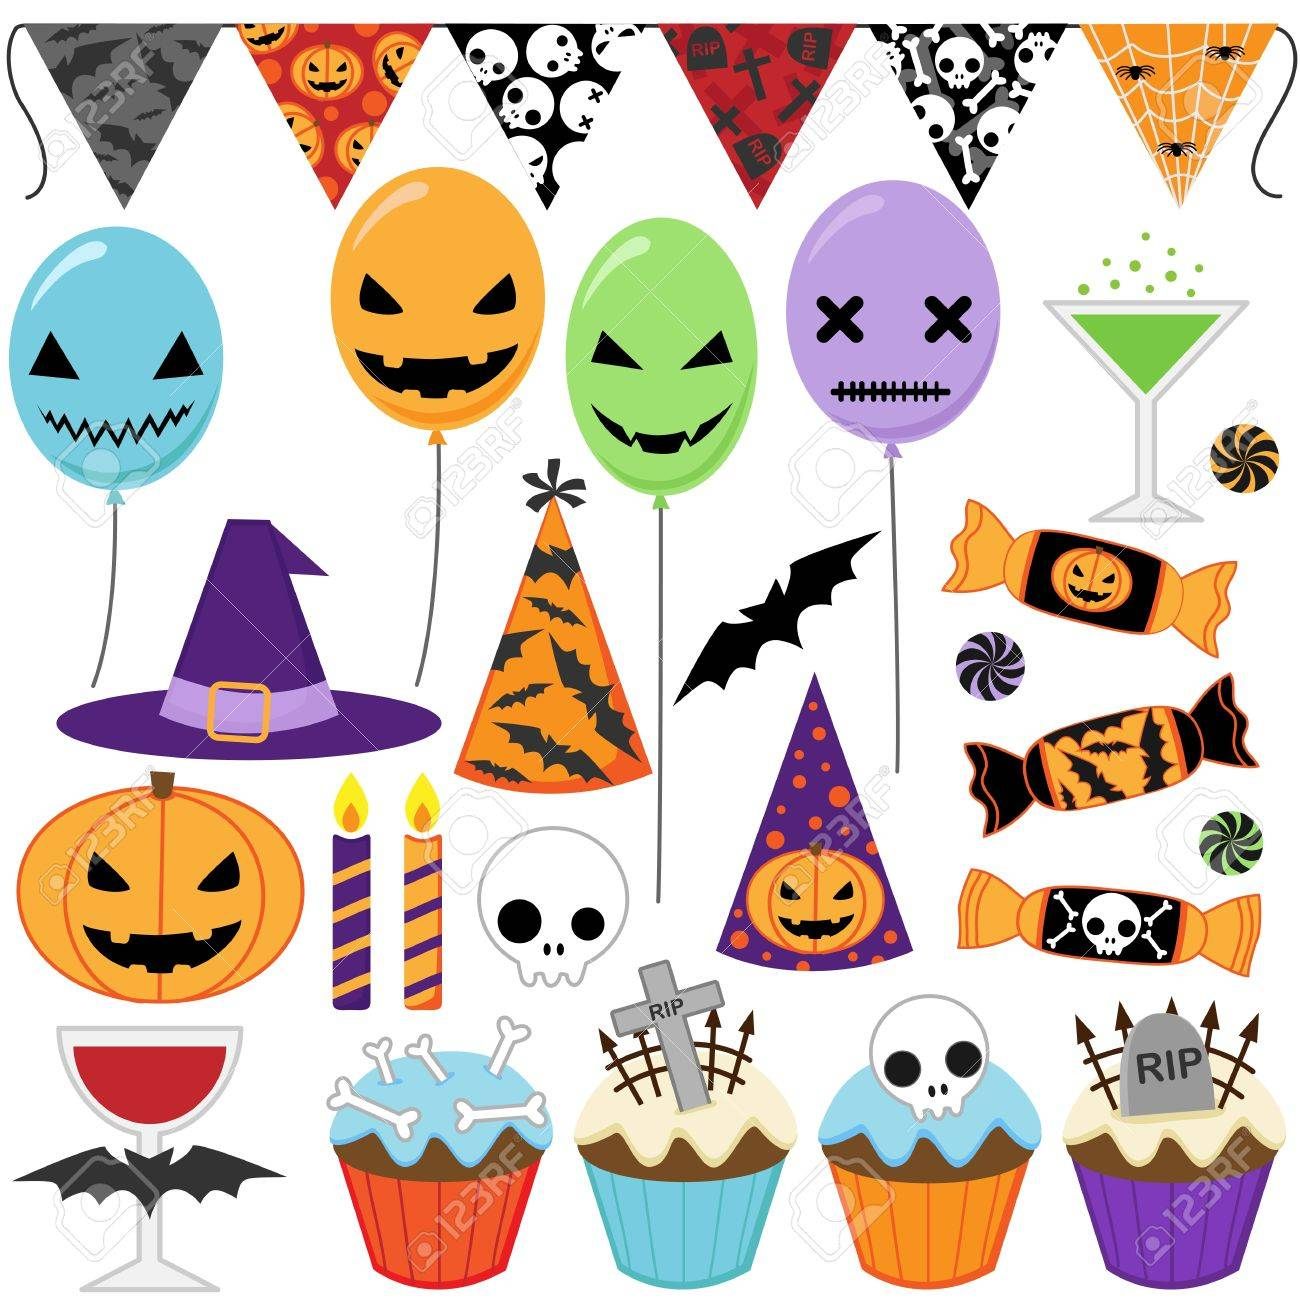 Set Of Halloween Party Elements Royalty Free Cliparts, Vectors ...